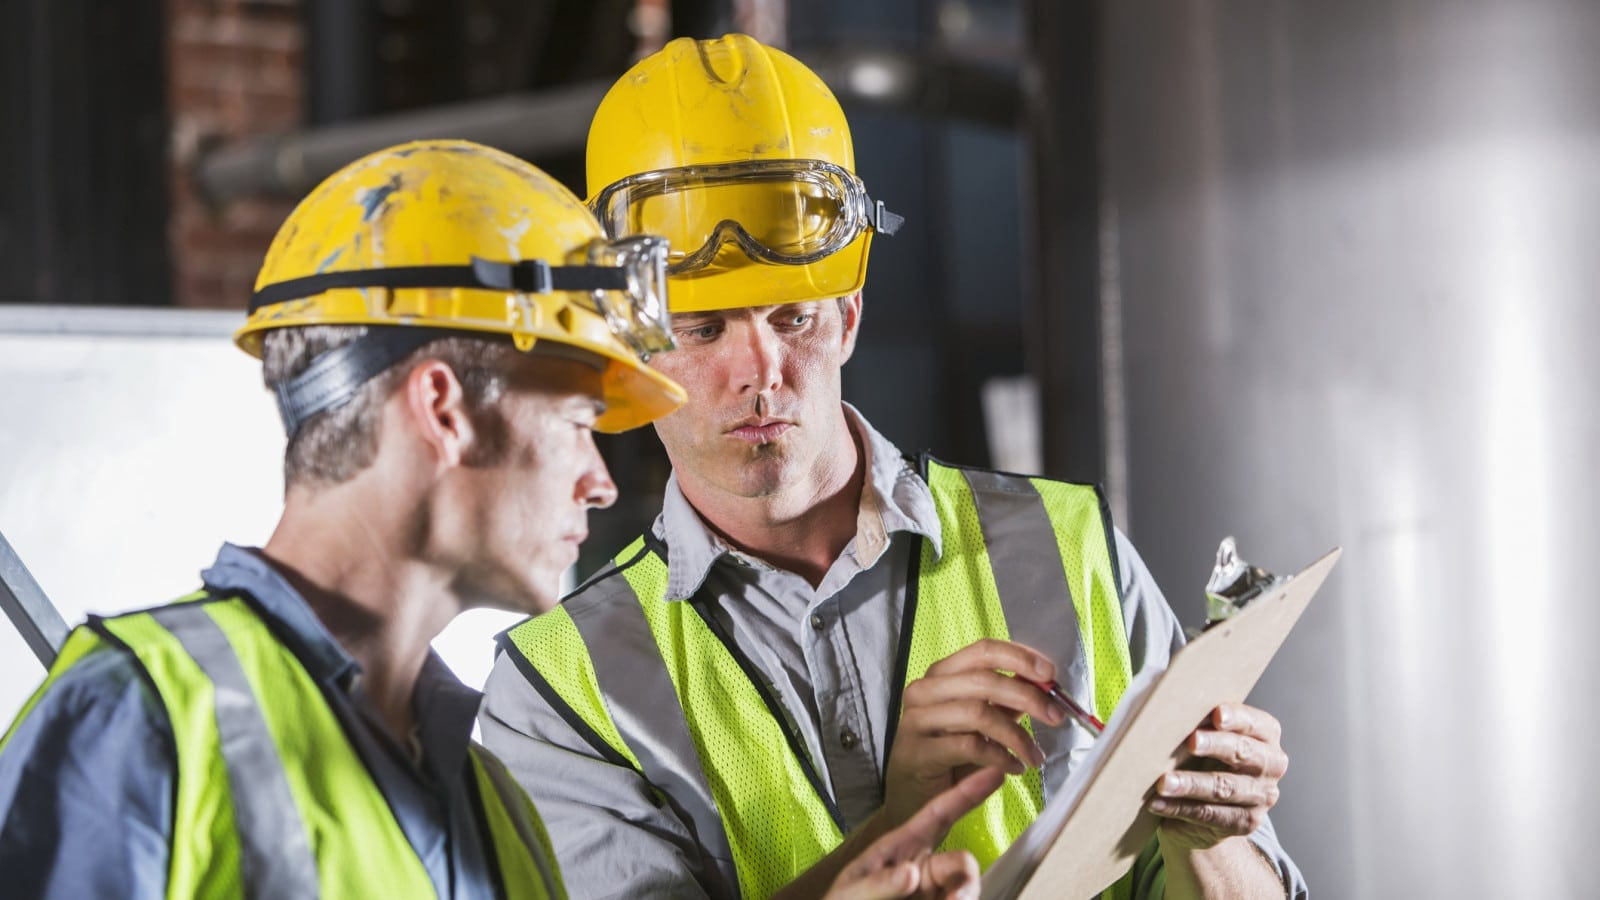 Two men working together, wearing hardhats, safety glasses and vests.